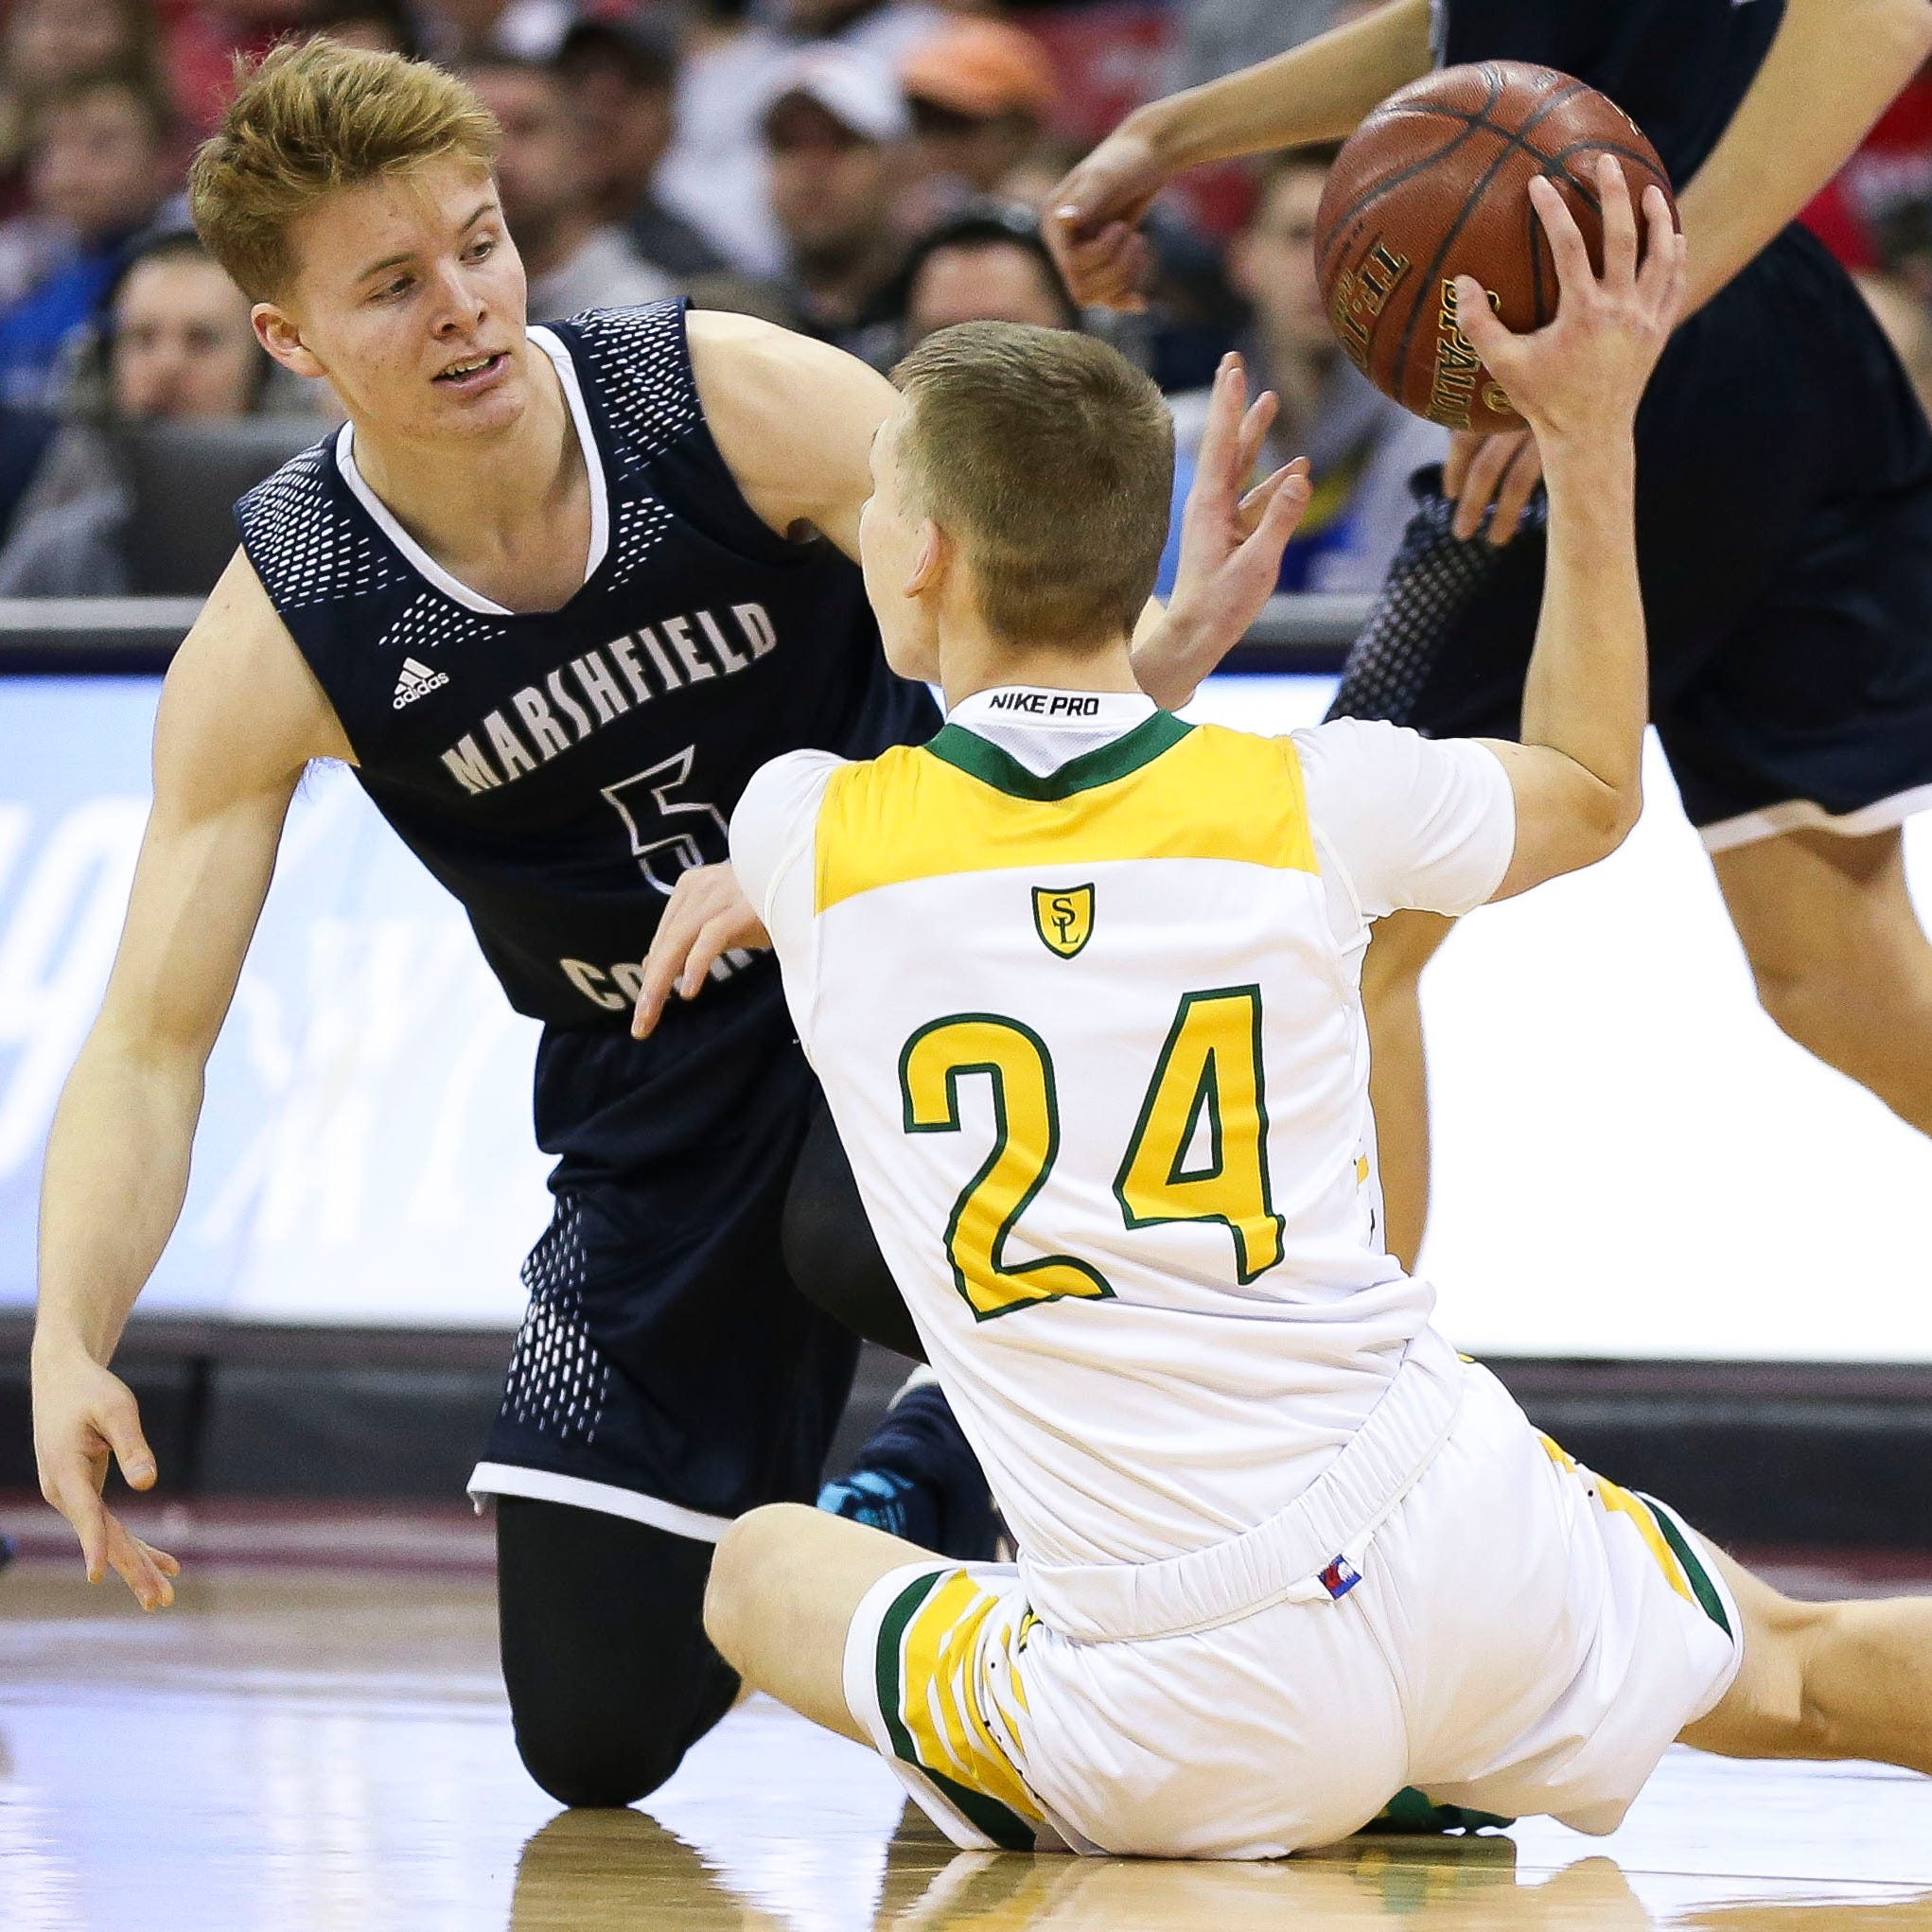 WIAA state basketball: Nicolet, Martin Luther, New Glarus, Sheboygan Lutheran win titles